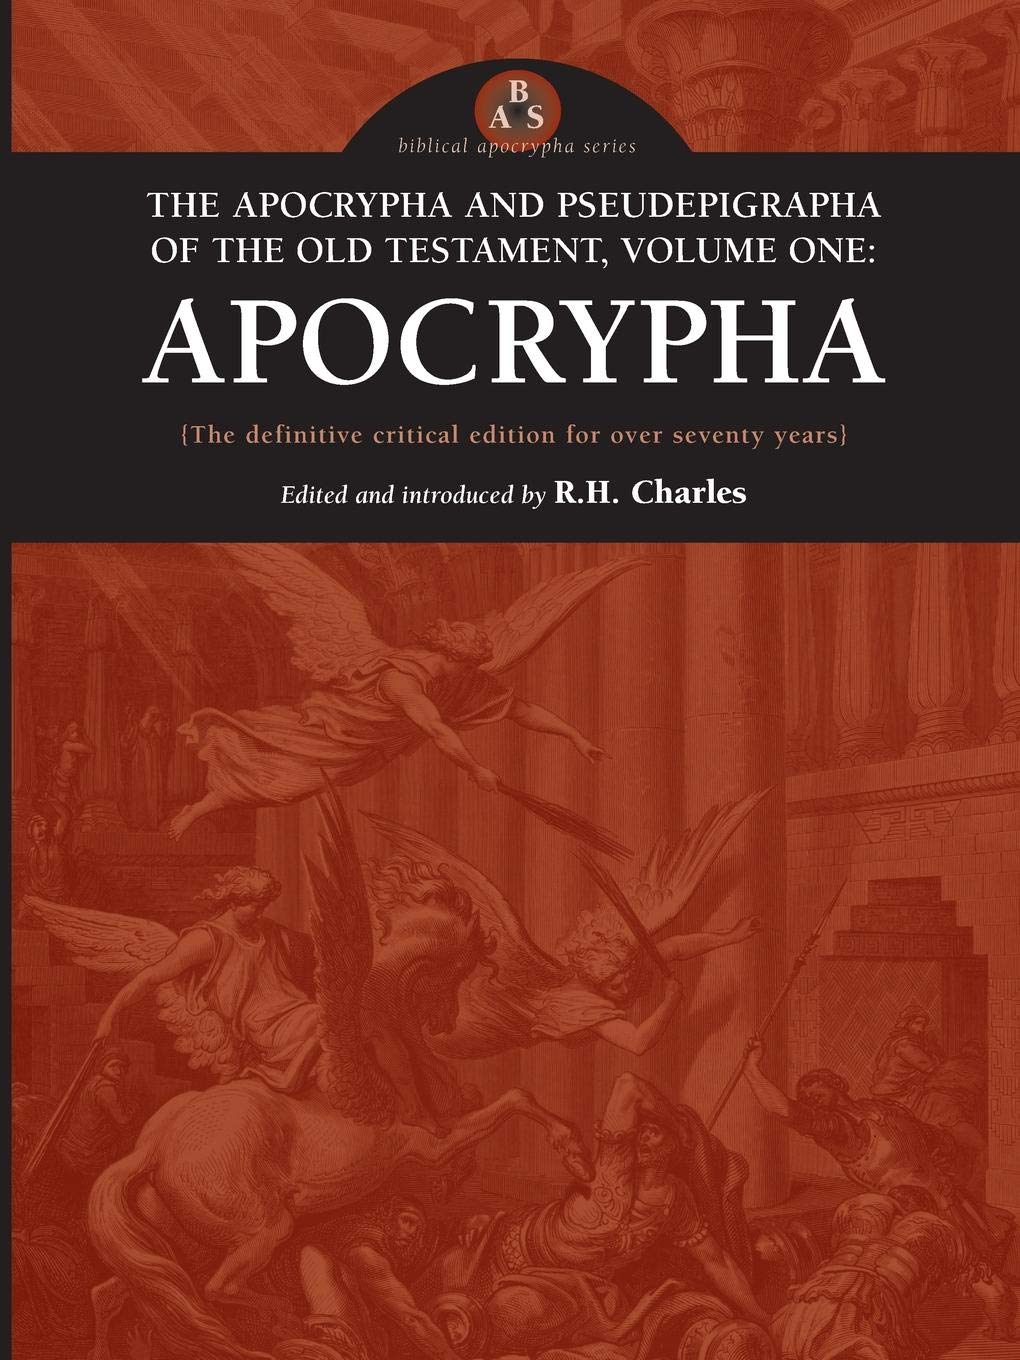 The Apocrypha and Pseudepigrapha of the Old Testament: Apocrypha PDF